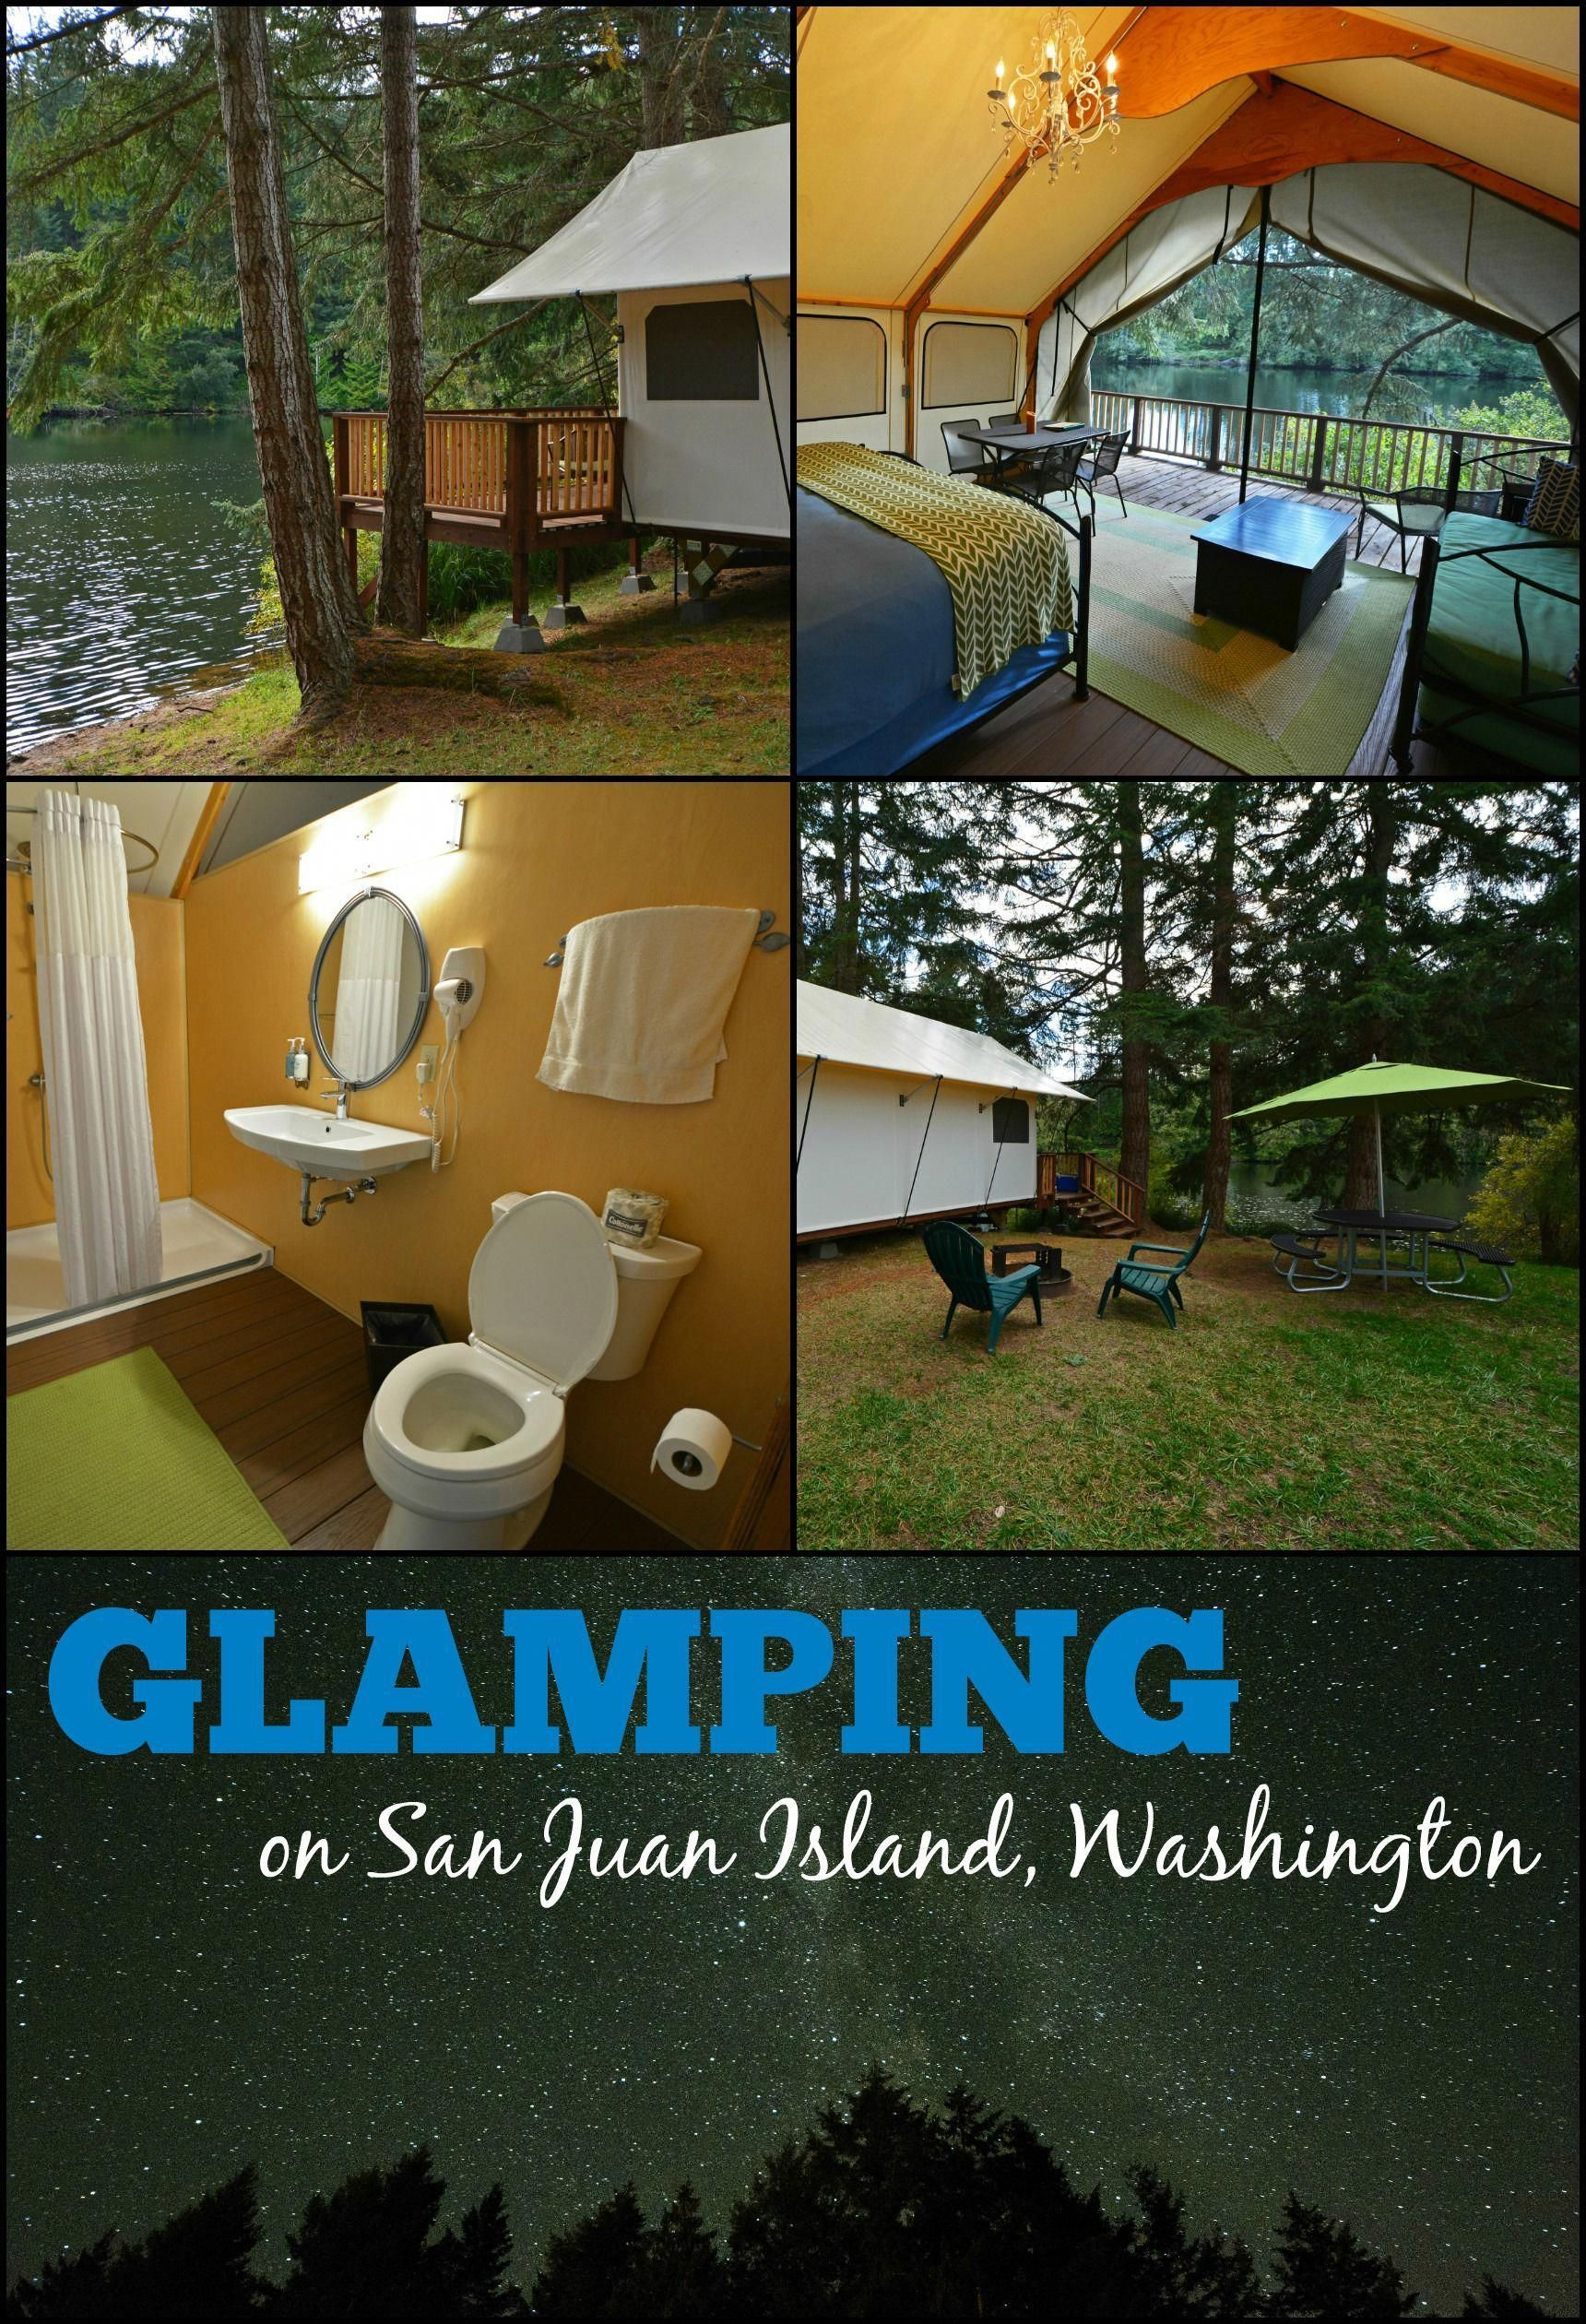 Glamping in the San Juan Islands is a must for your visit to the